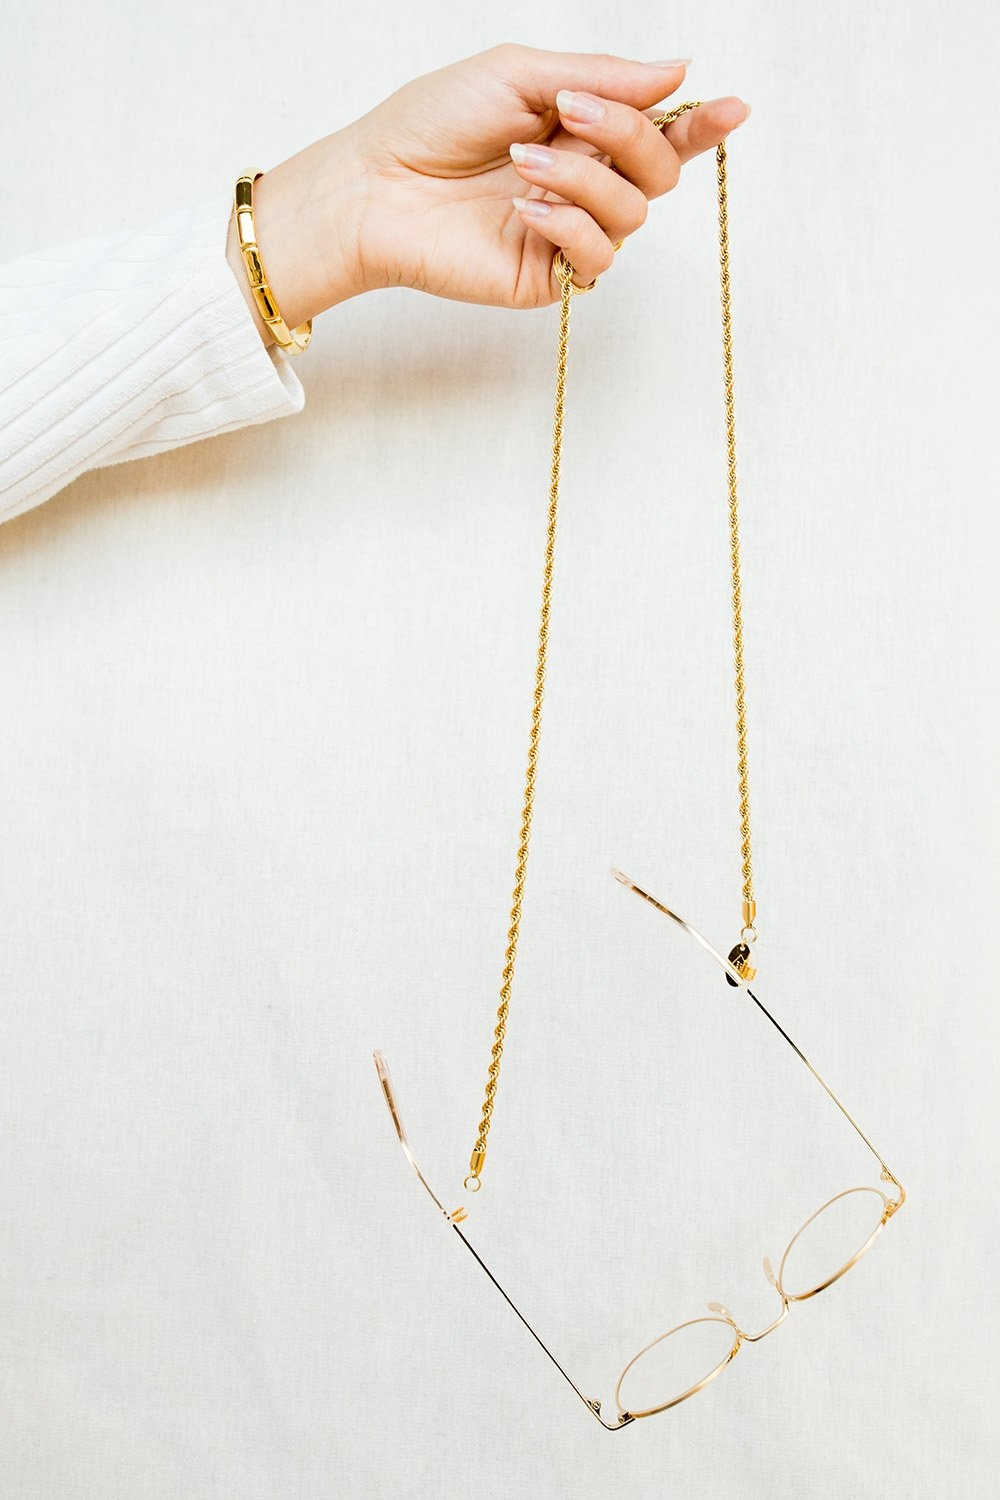 Sunnycord snake chain gold-3